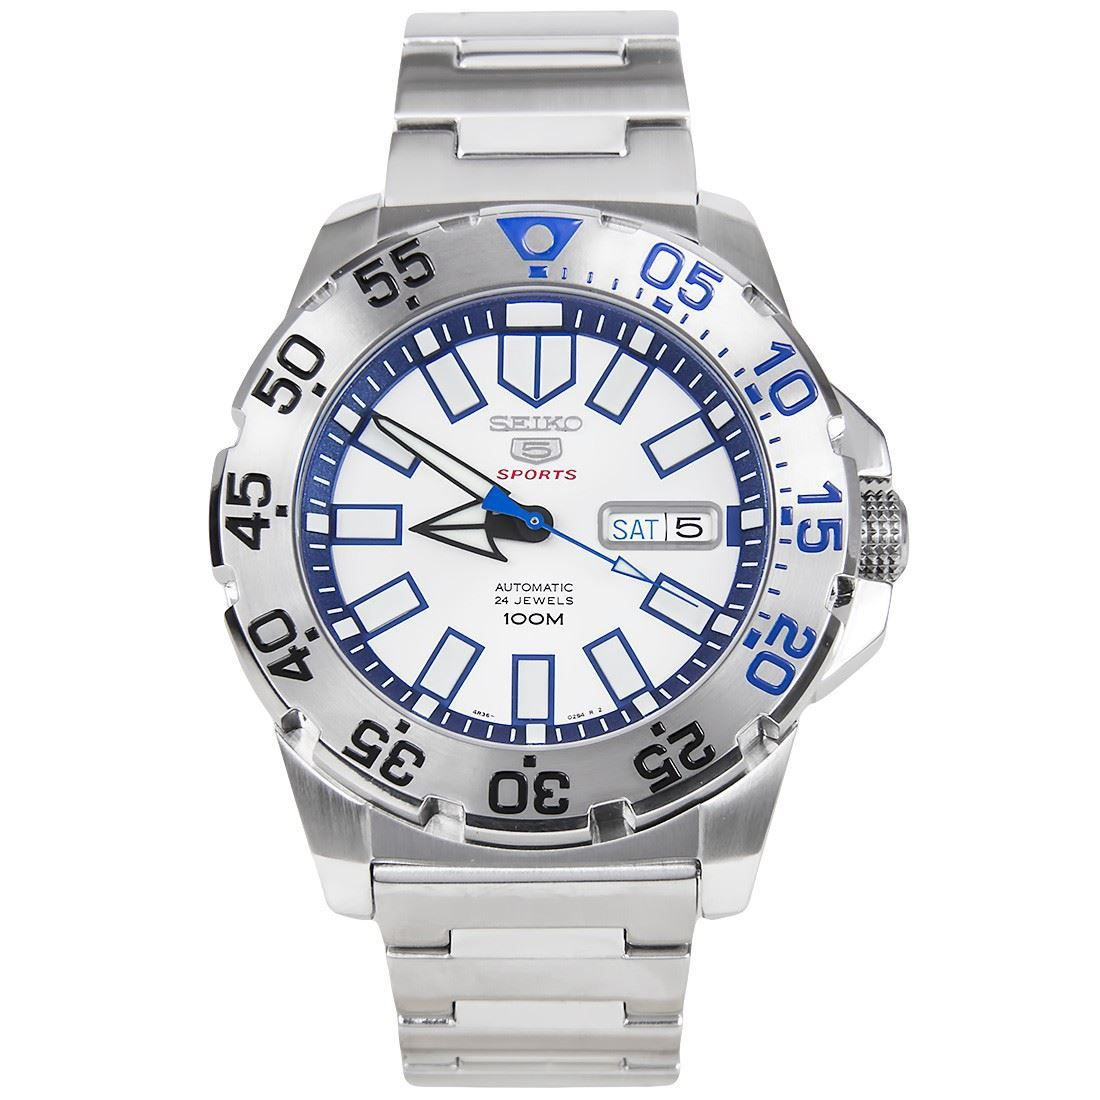 ff53cc63c45 A-Watches.com - Seiko 5 Sports Monster Automatic Watch SRP481K1